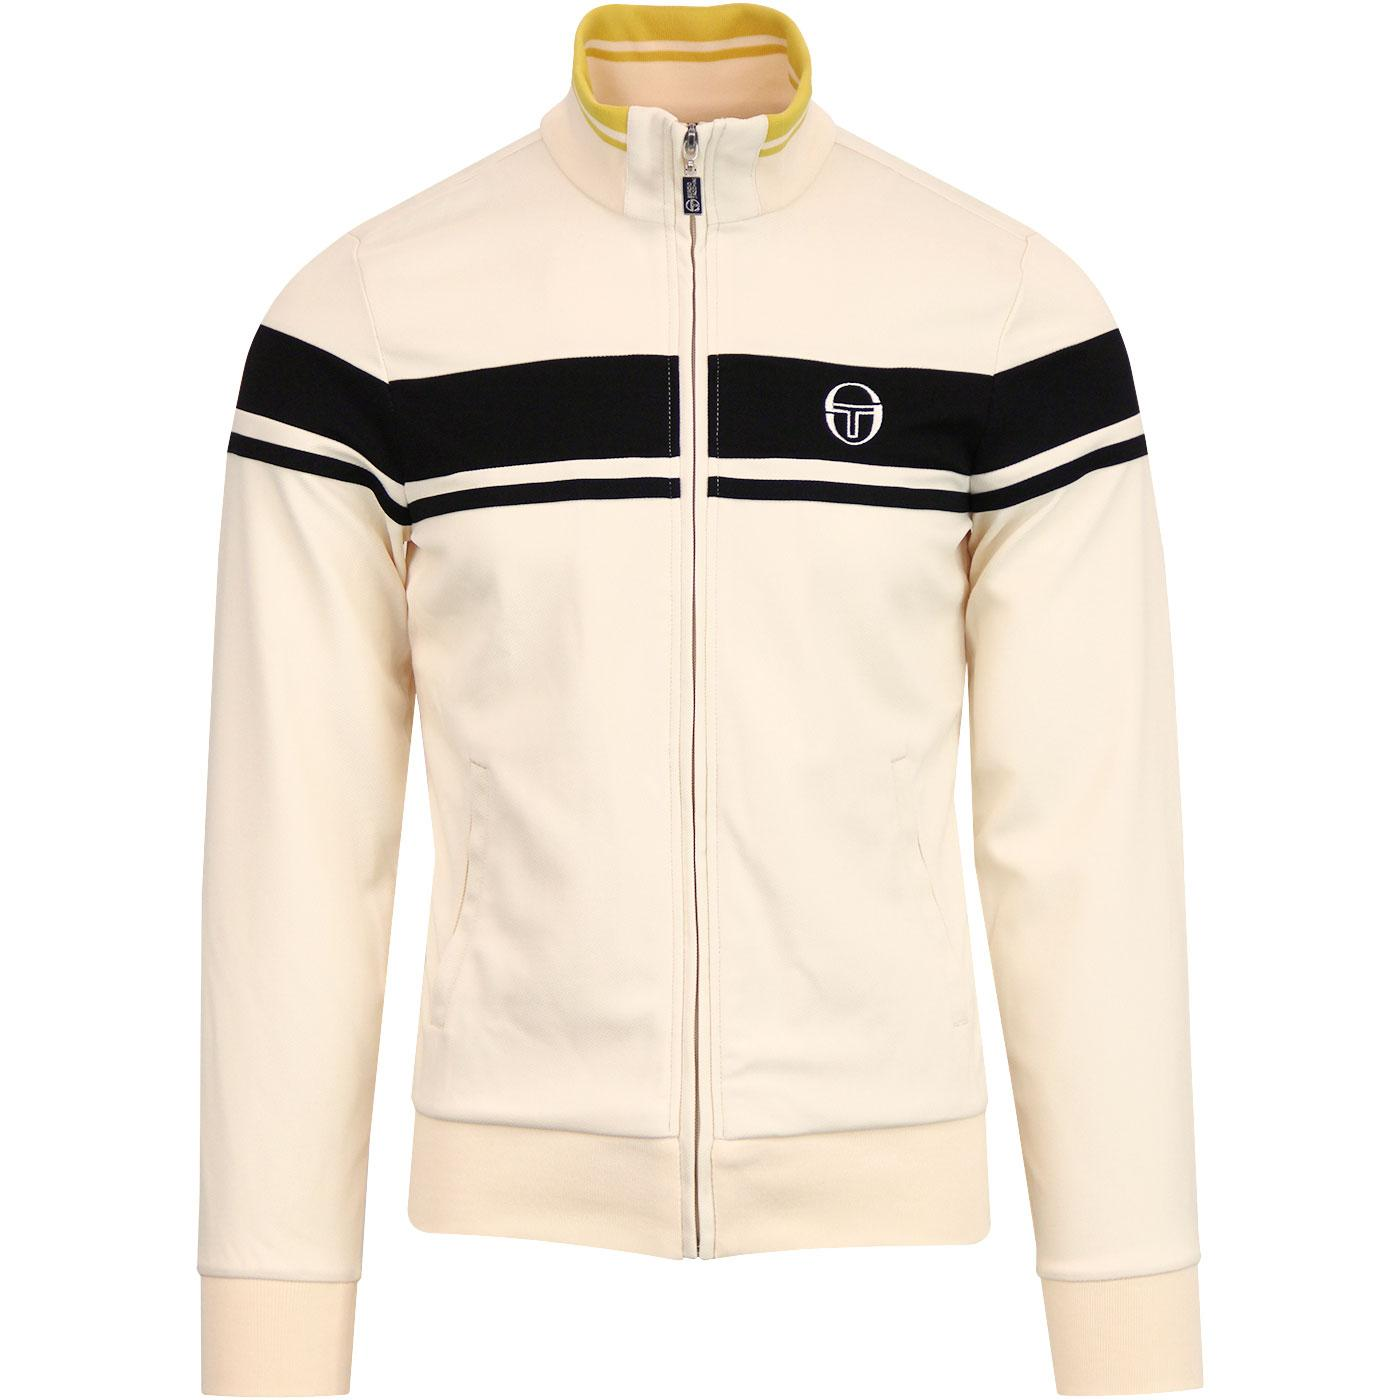 Damarindo SERGIO TACCHINI Chest Panel Track Jacket